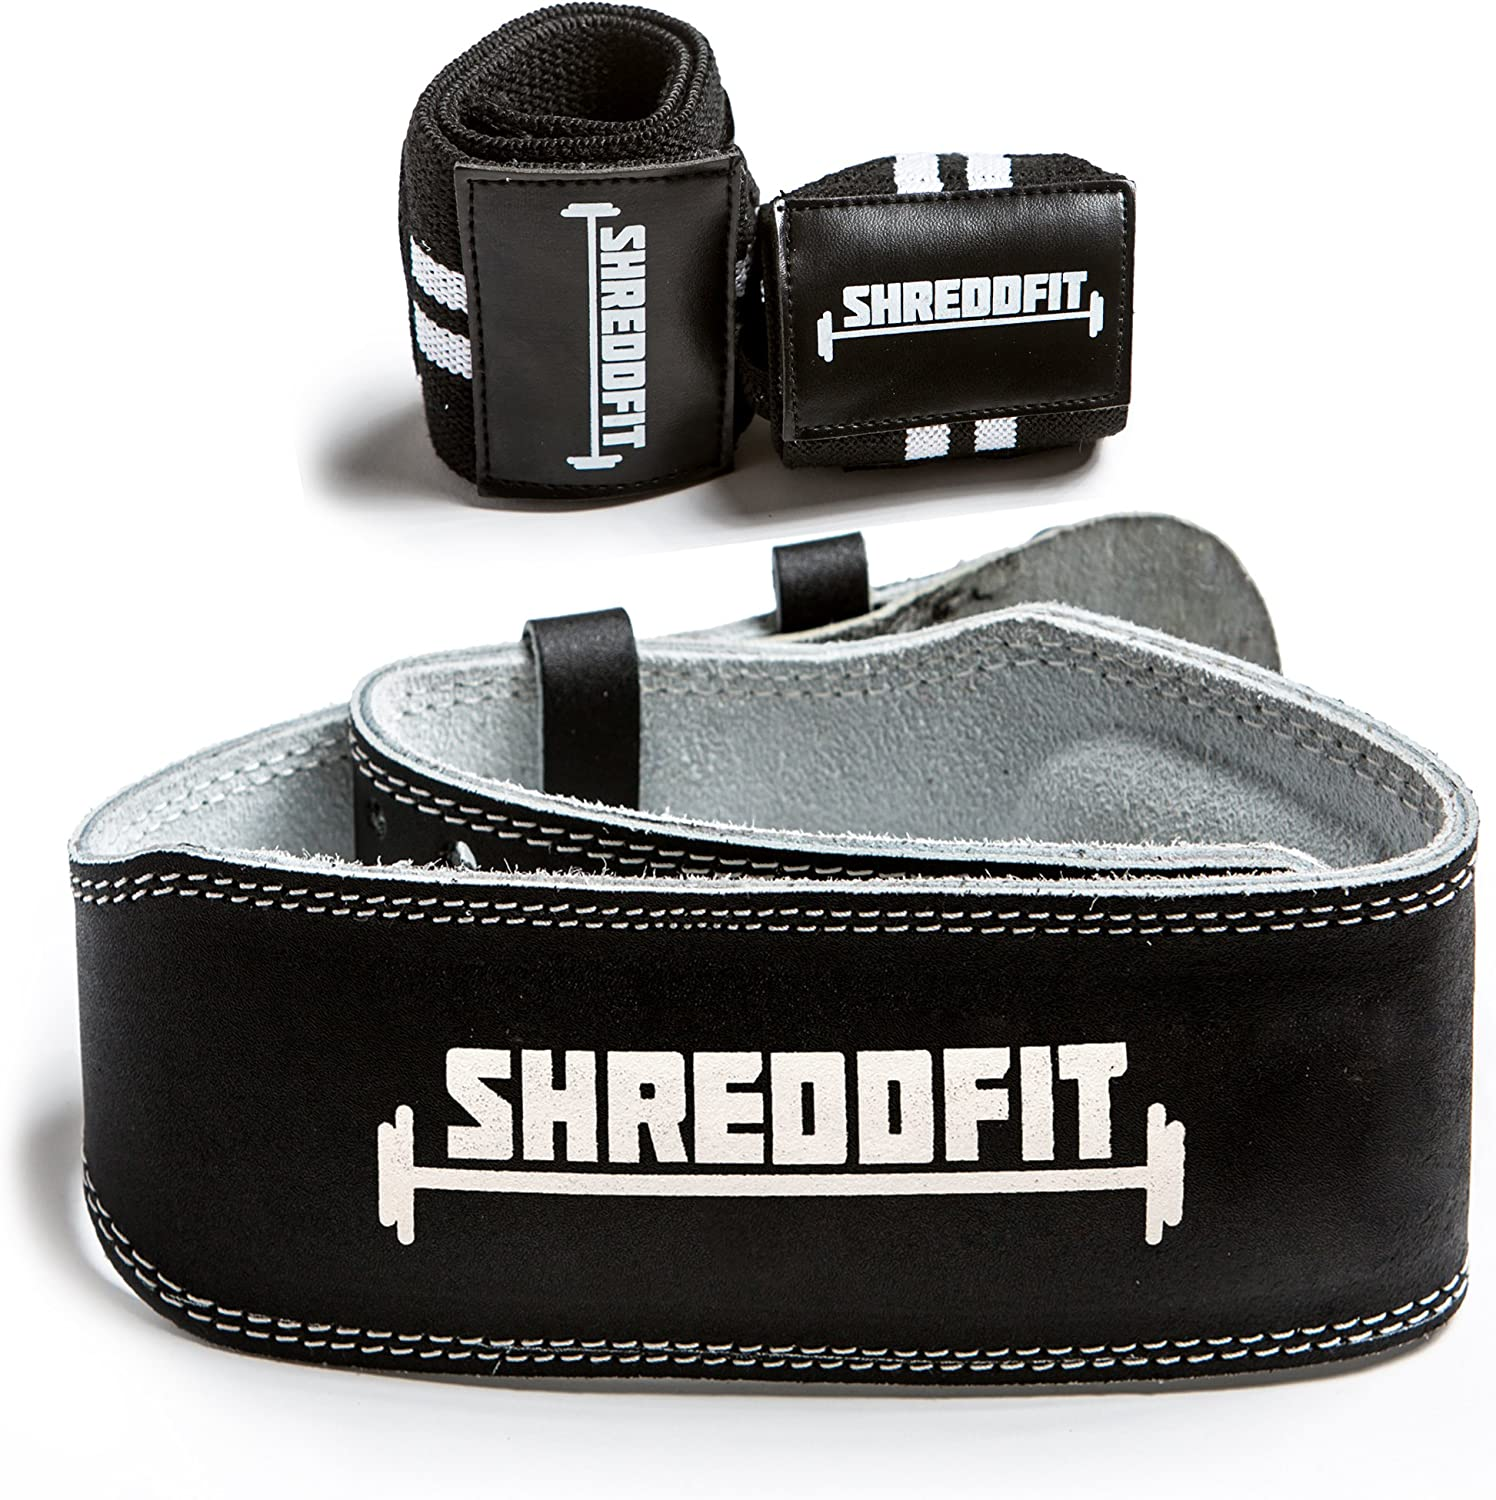 2018 ShreddFit Premium Leather Weight Lifting Belt VALUE PACK with Bonus Wrist Wraps Lower Back Lumbar Support Power Lifting Cross Training Deadlifts Squats